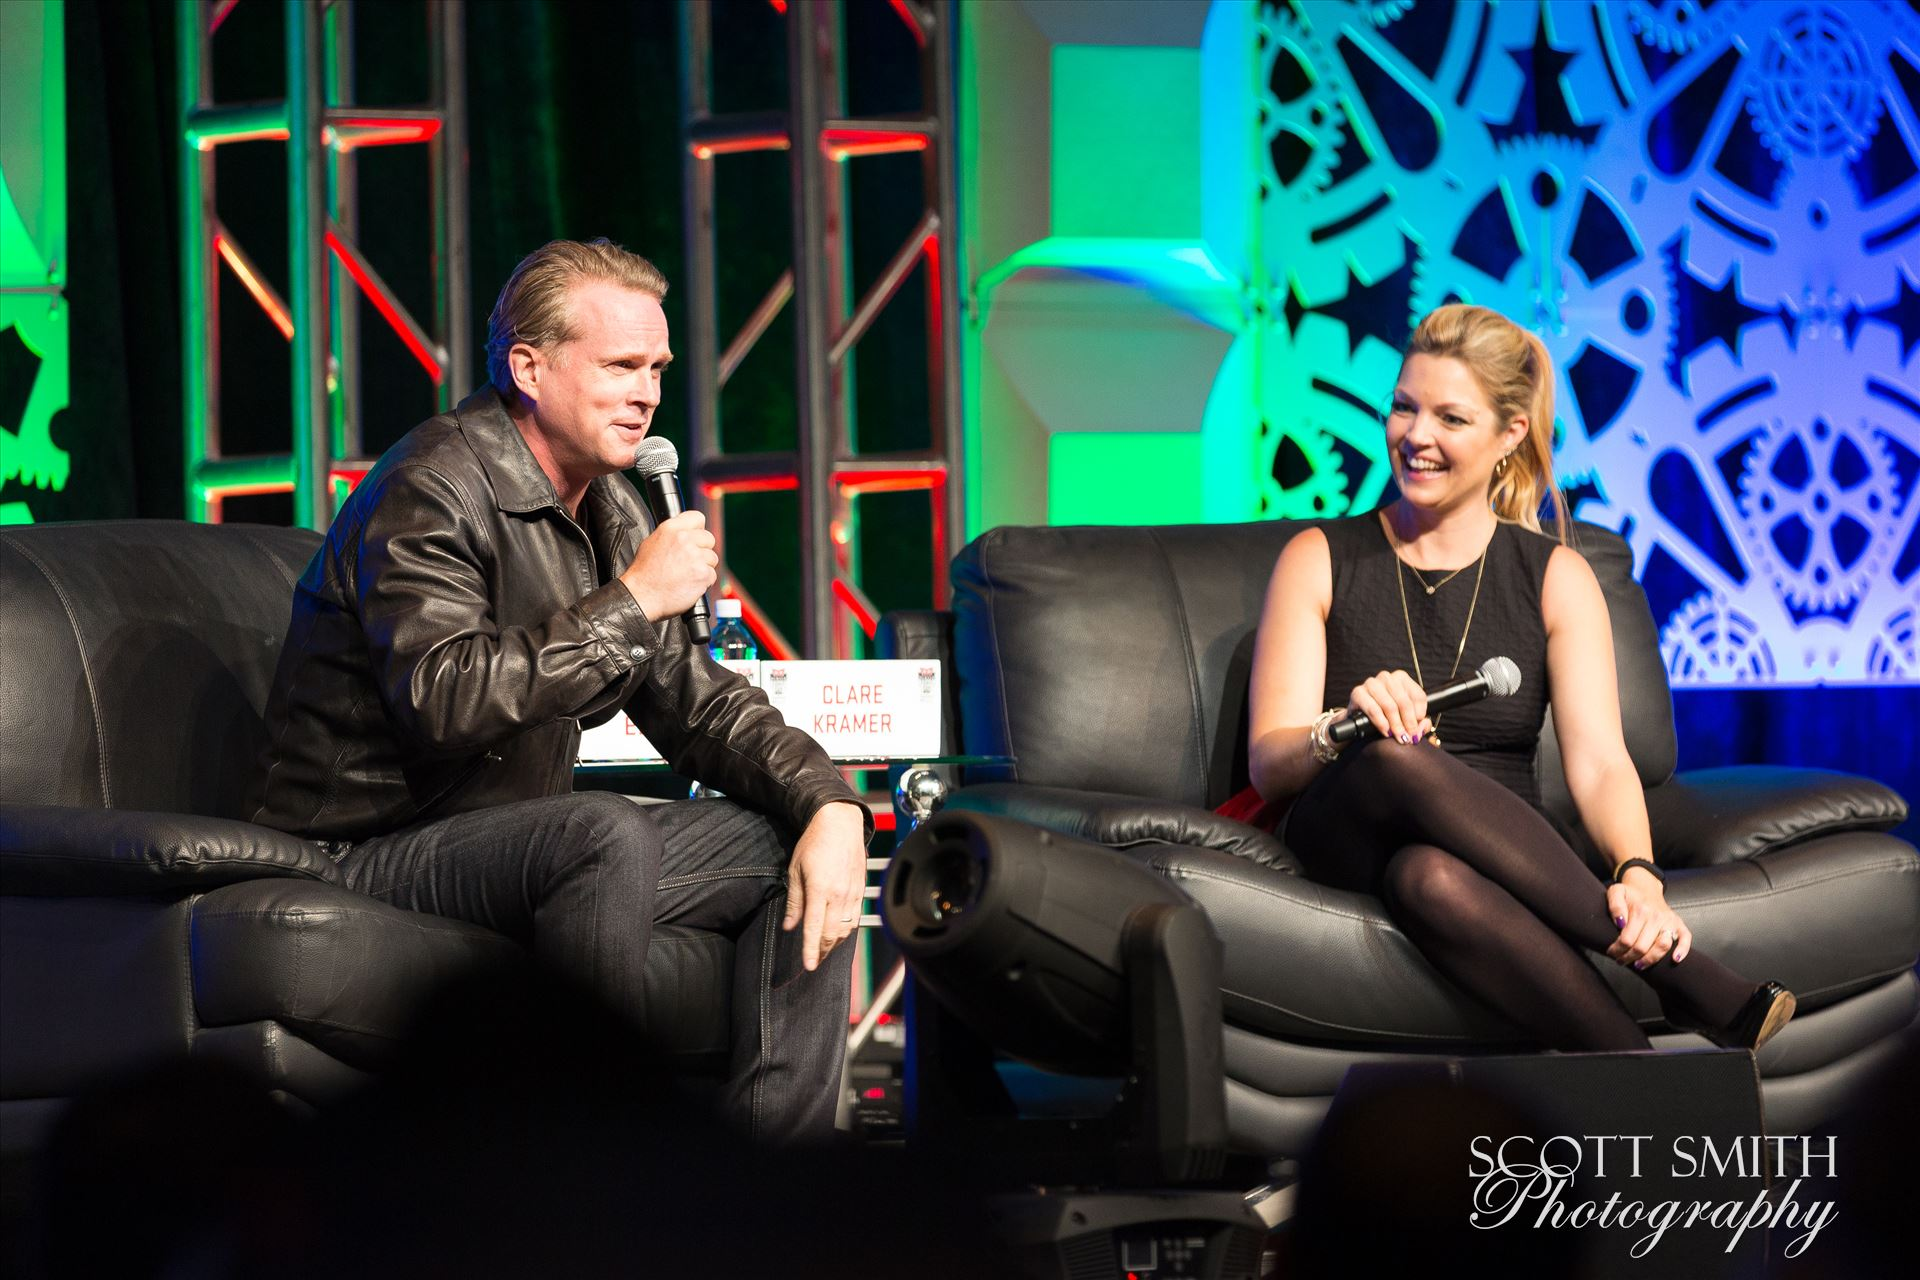 Denver Comic Con 2016 27 - Denver Comic Con 2016 at the Colorado Convention Center. Clare Kramer and Cary Elwes. by Scott Smith Photos